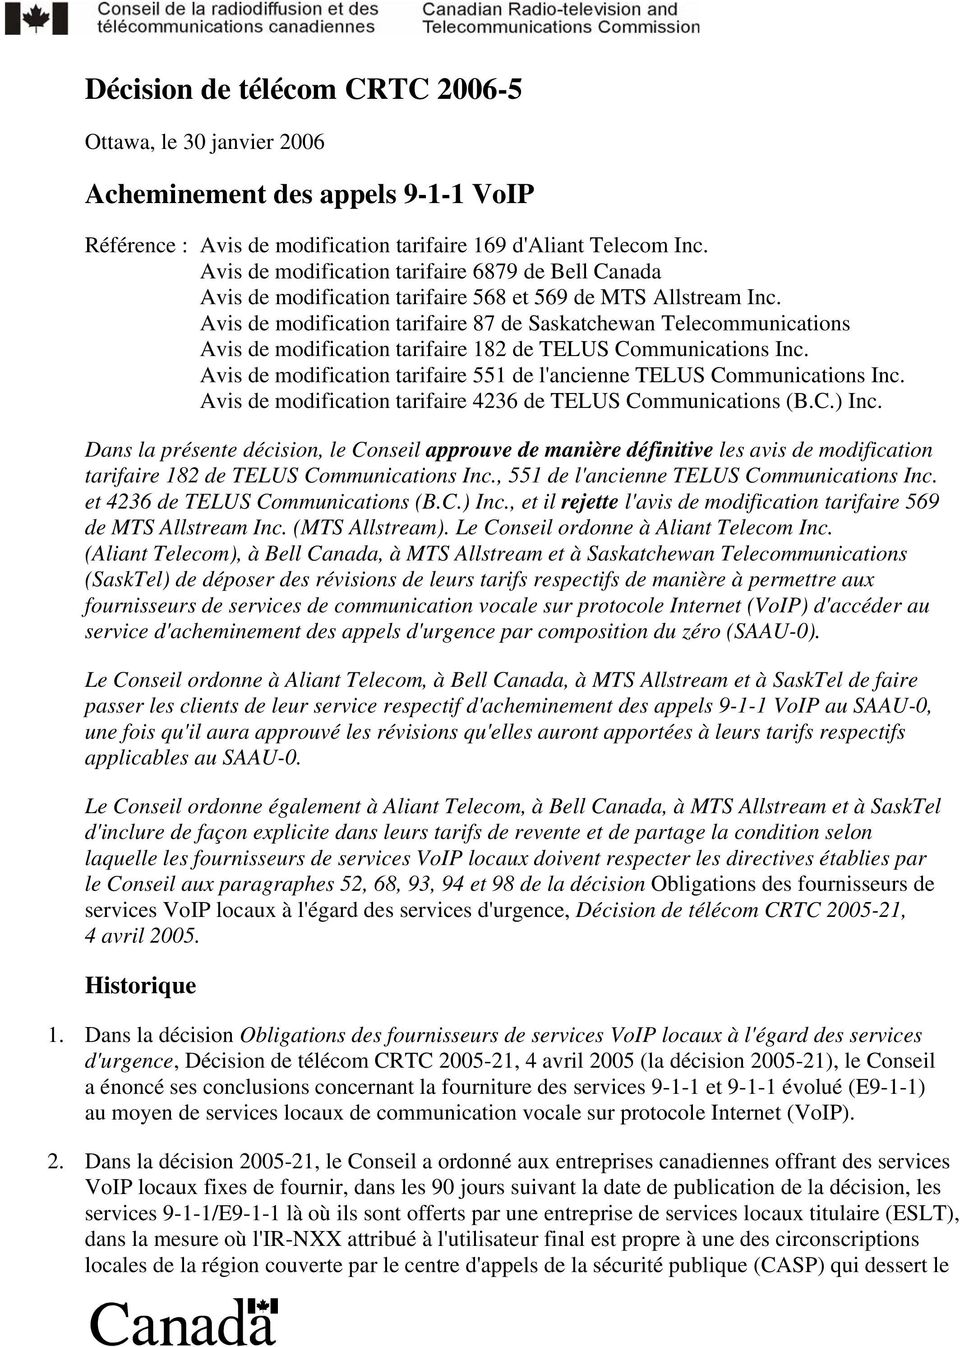 Avis de modification tarifaire 87 de Saskatchewan Telecommunications Avis de modification tarifaire 182 de TELUS Communications Inc.